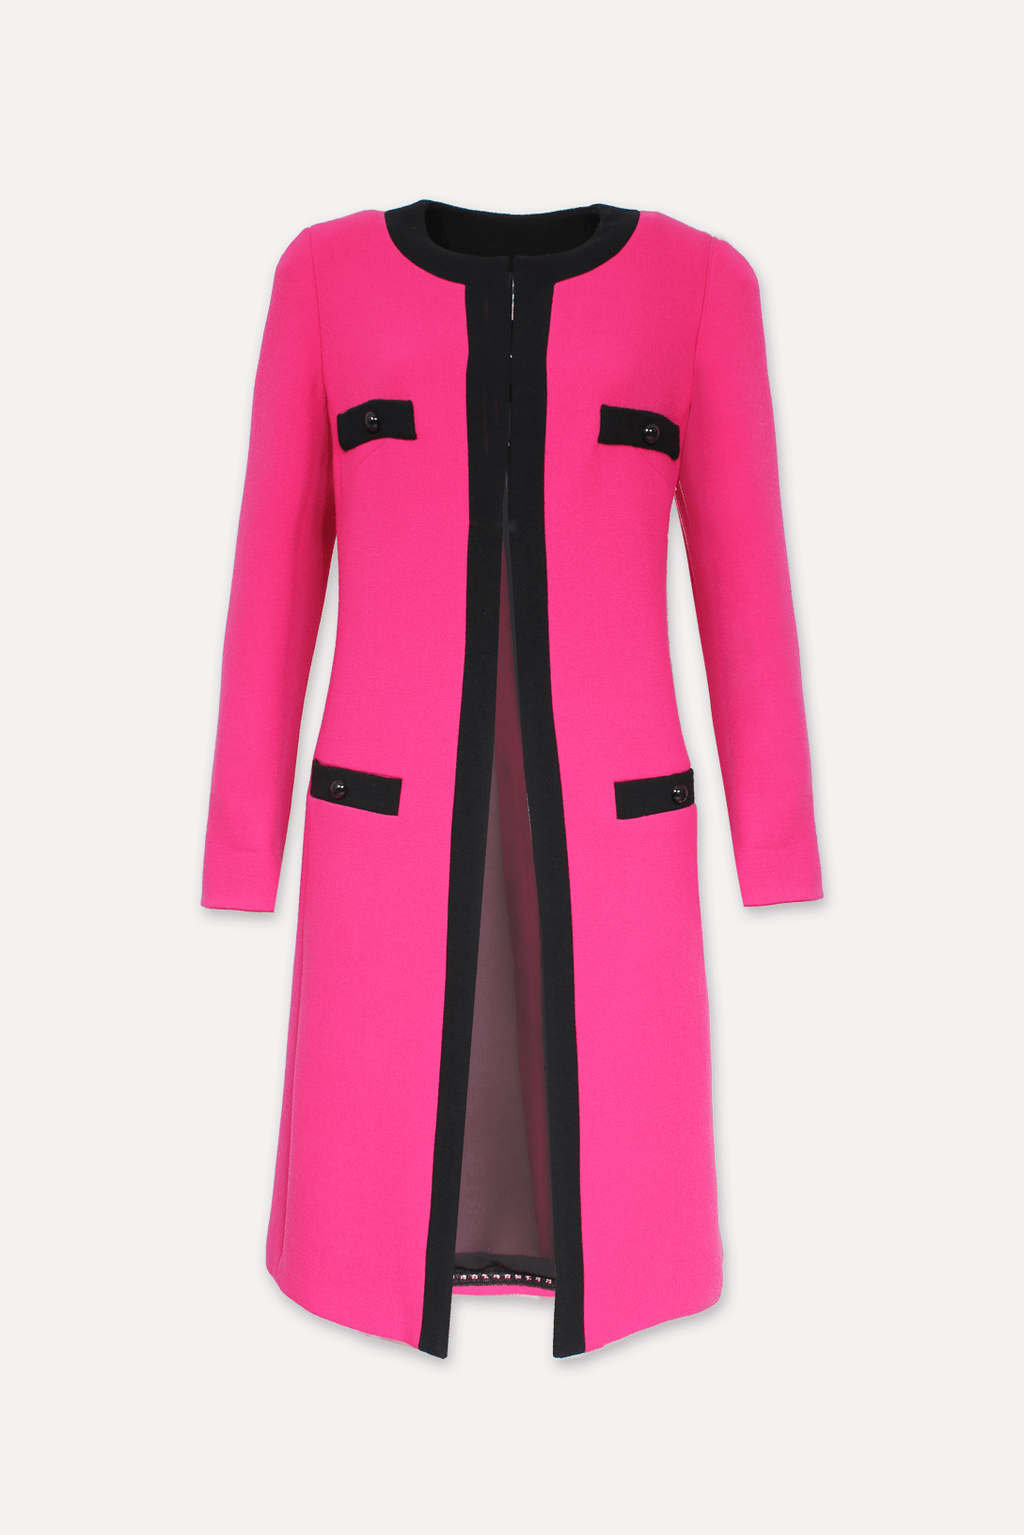 Weill Coats and Jackets Weill Carlen Fuchsia Coat 131111 izzi-of-baslow